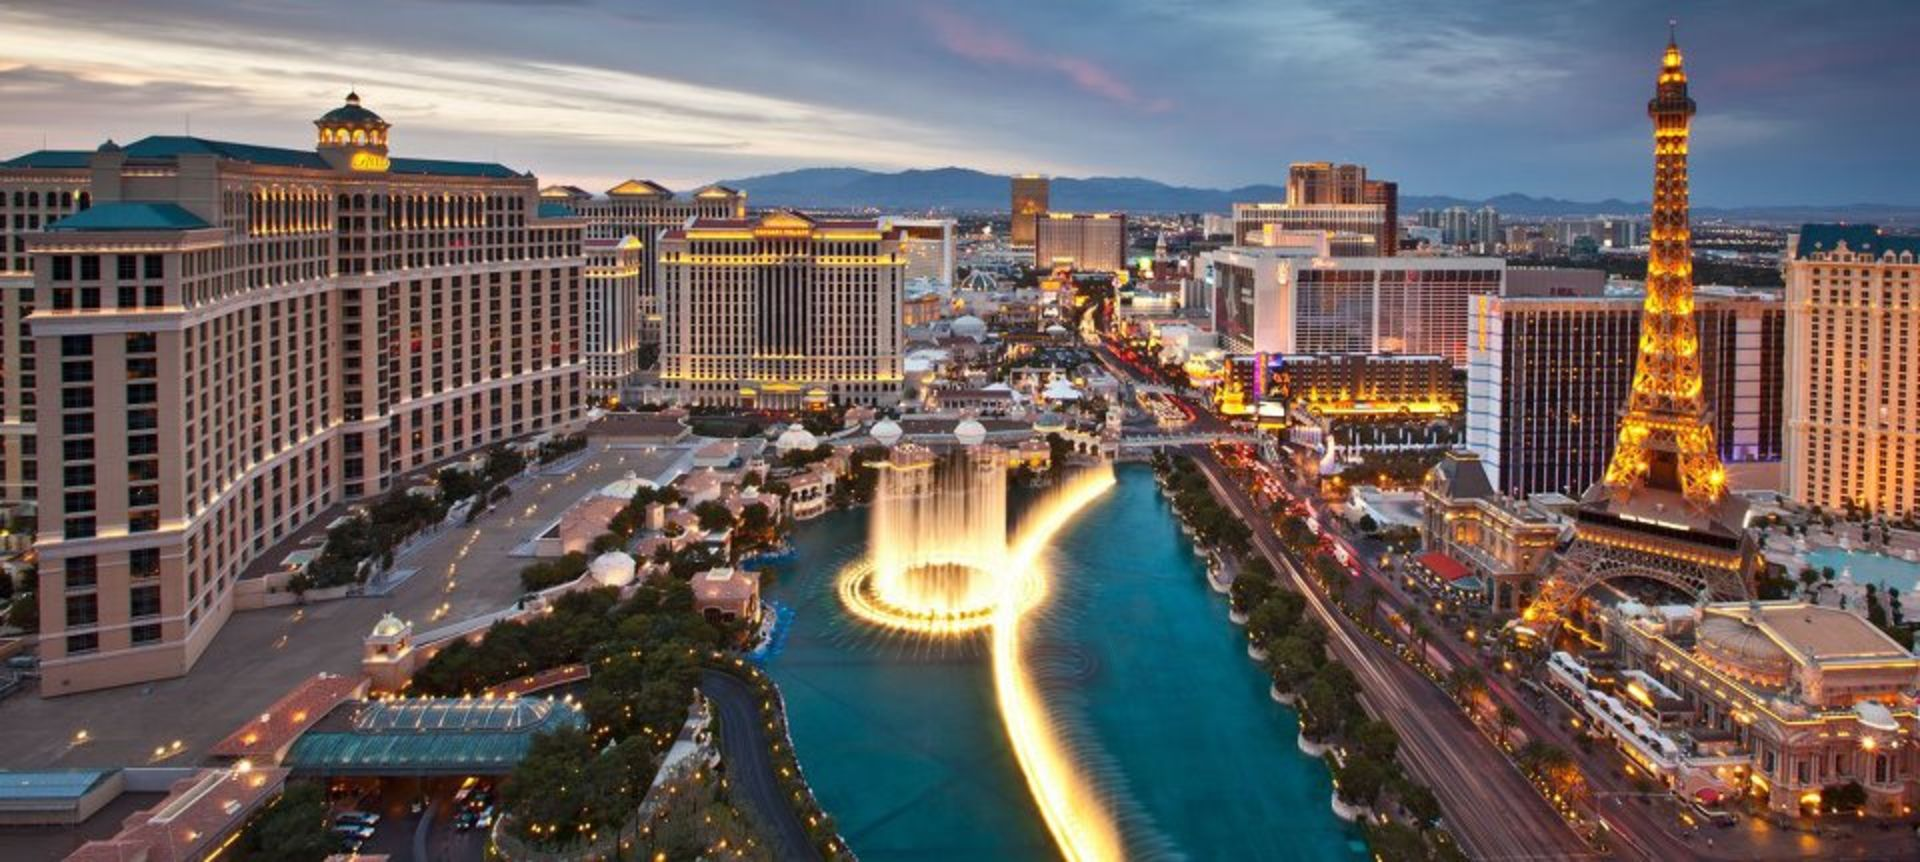 Relocating to the Big City of Las Vegas